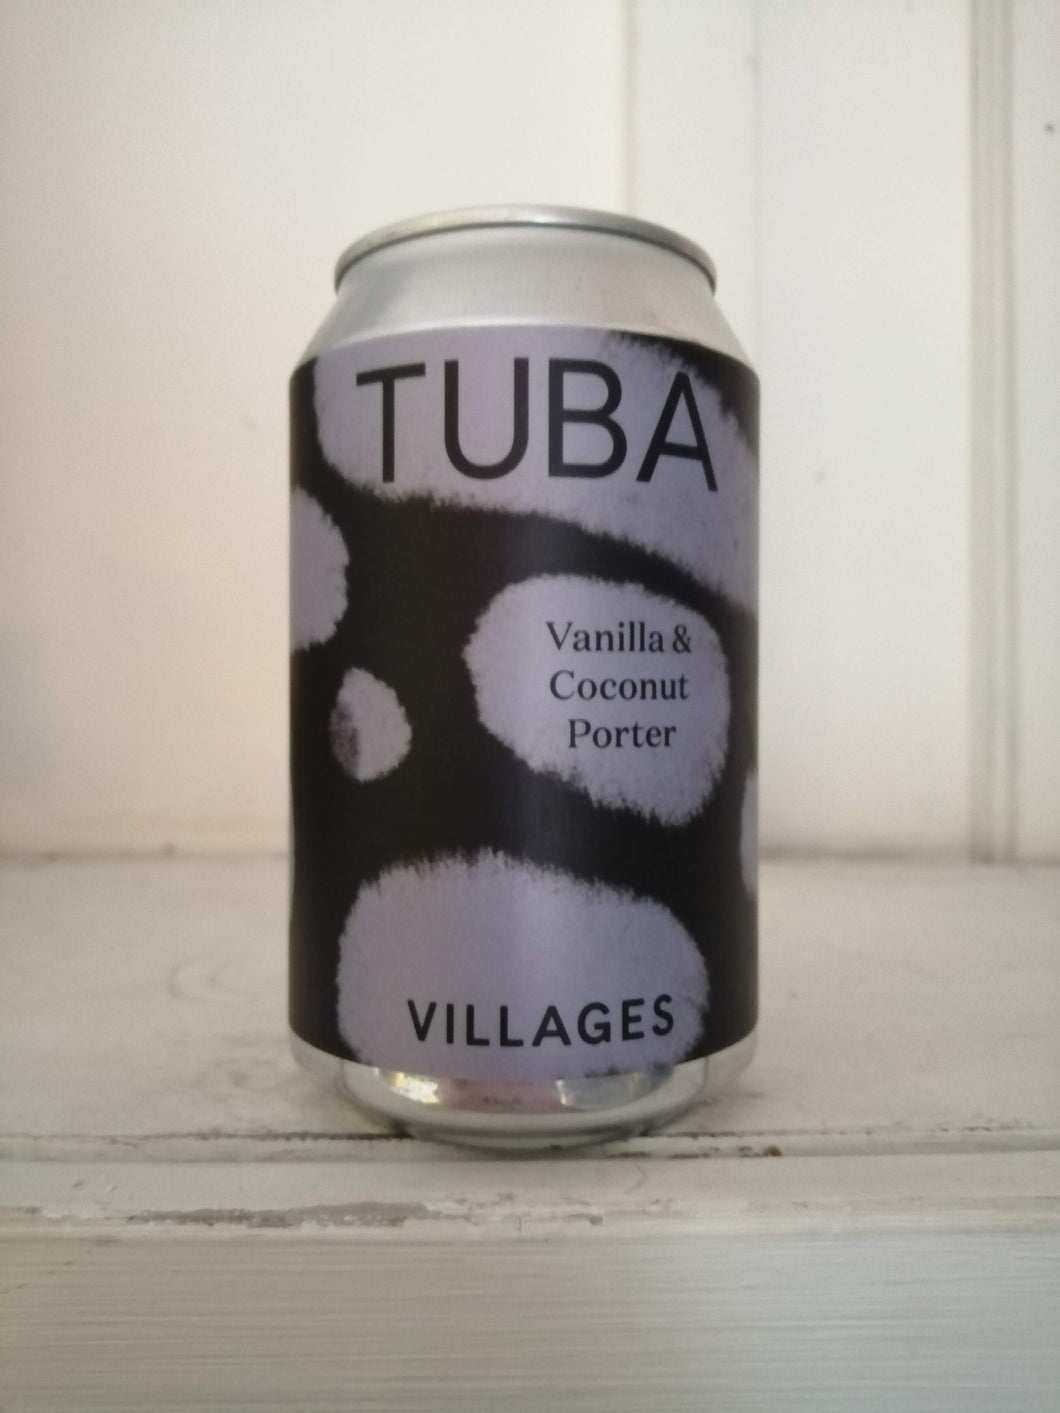 Villages Tuba 5.3% (330ml can)